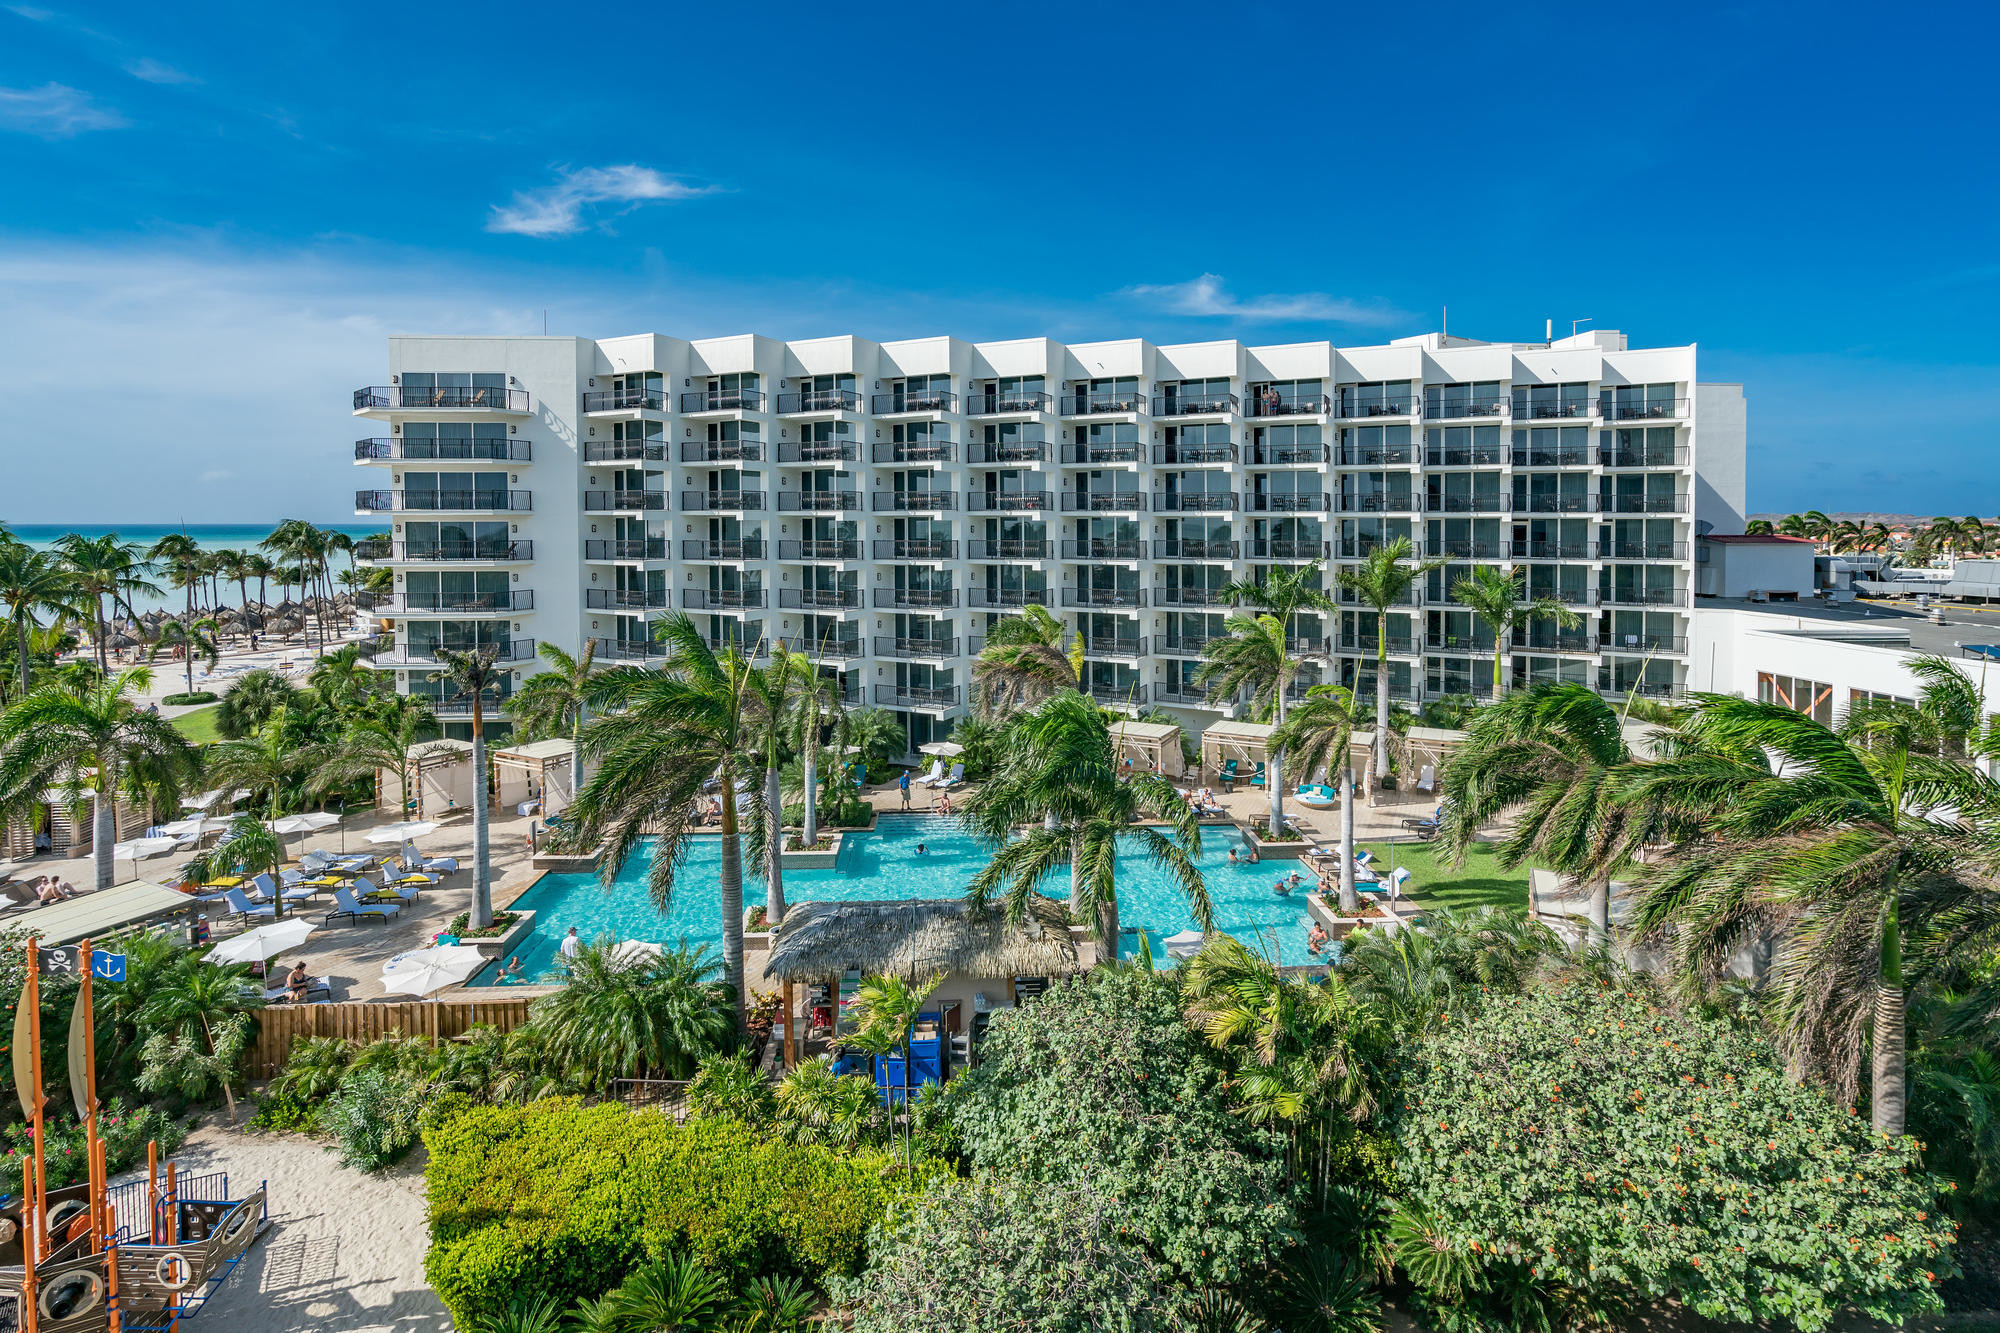 The grounds at the Aruba Marriott Resort and Stellaris Casino